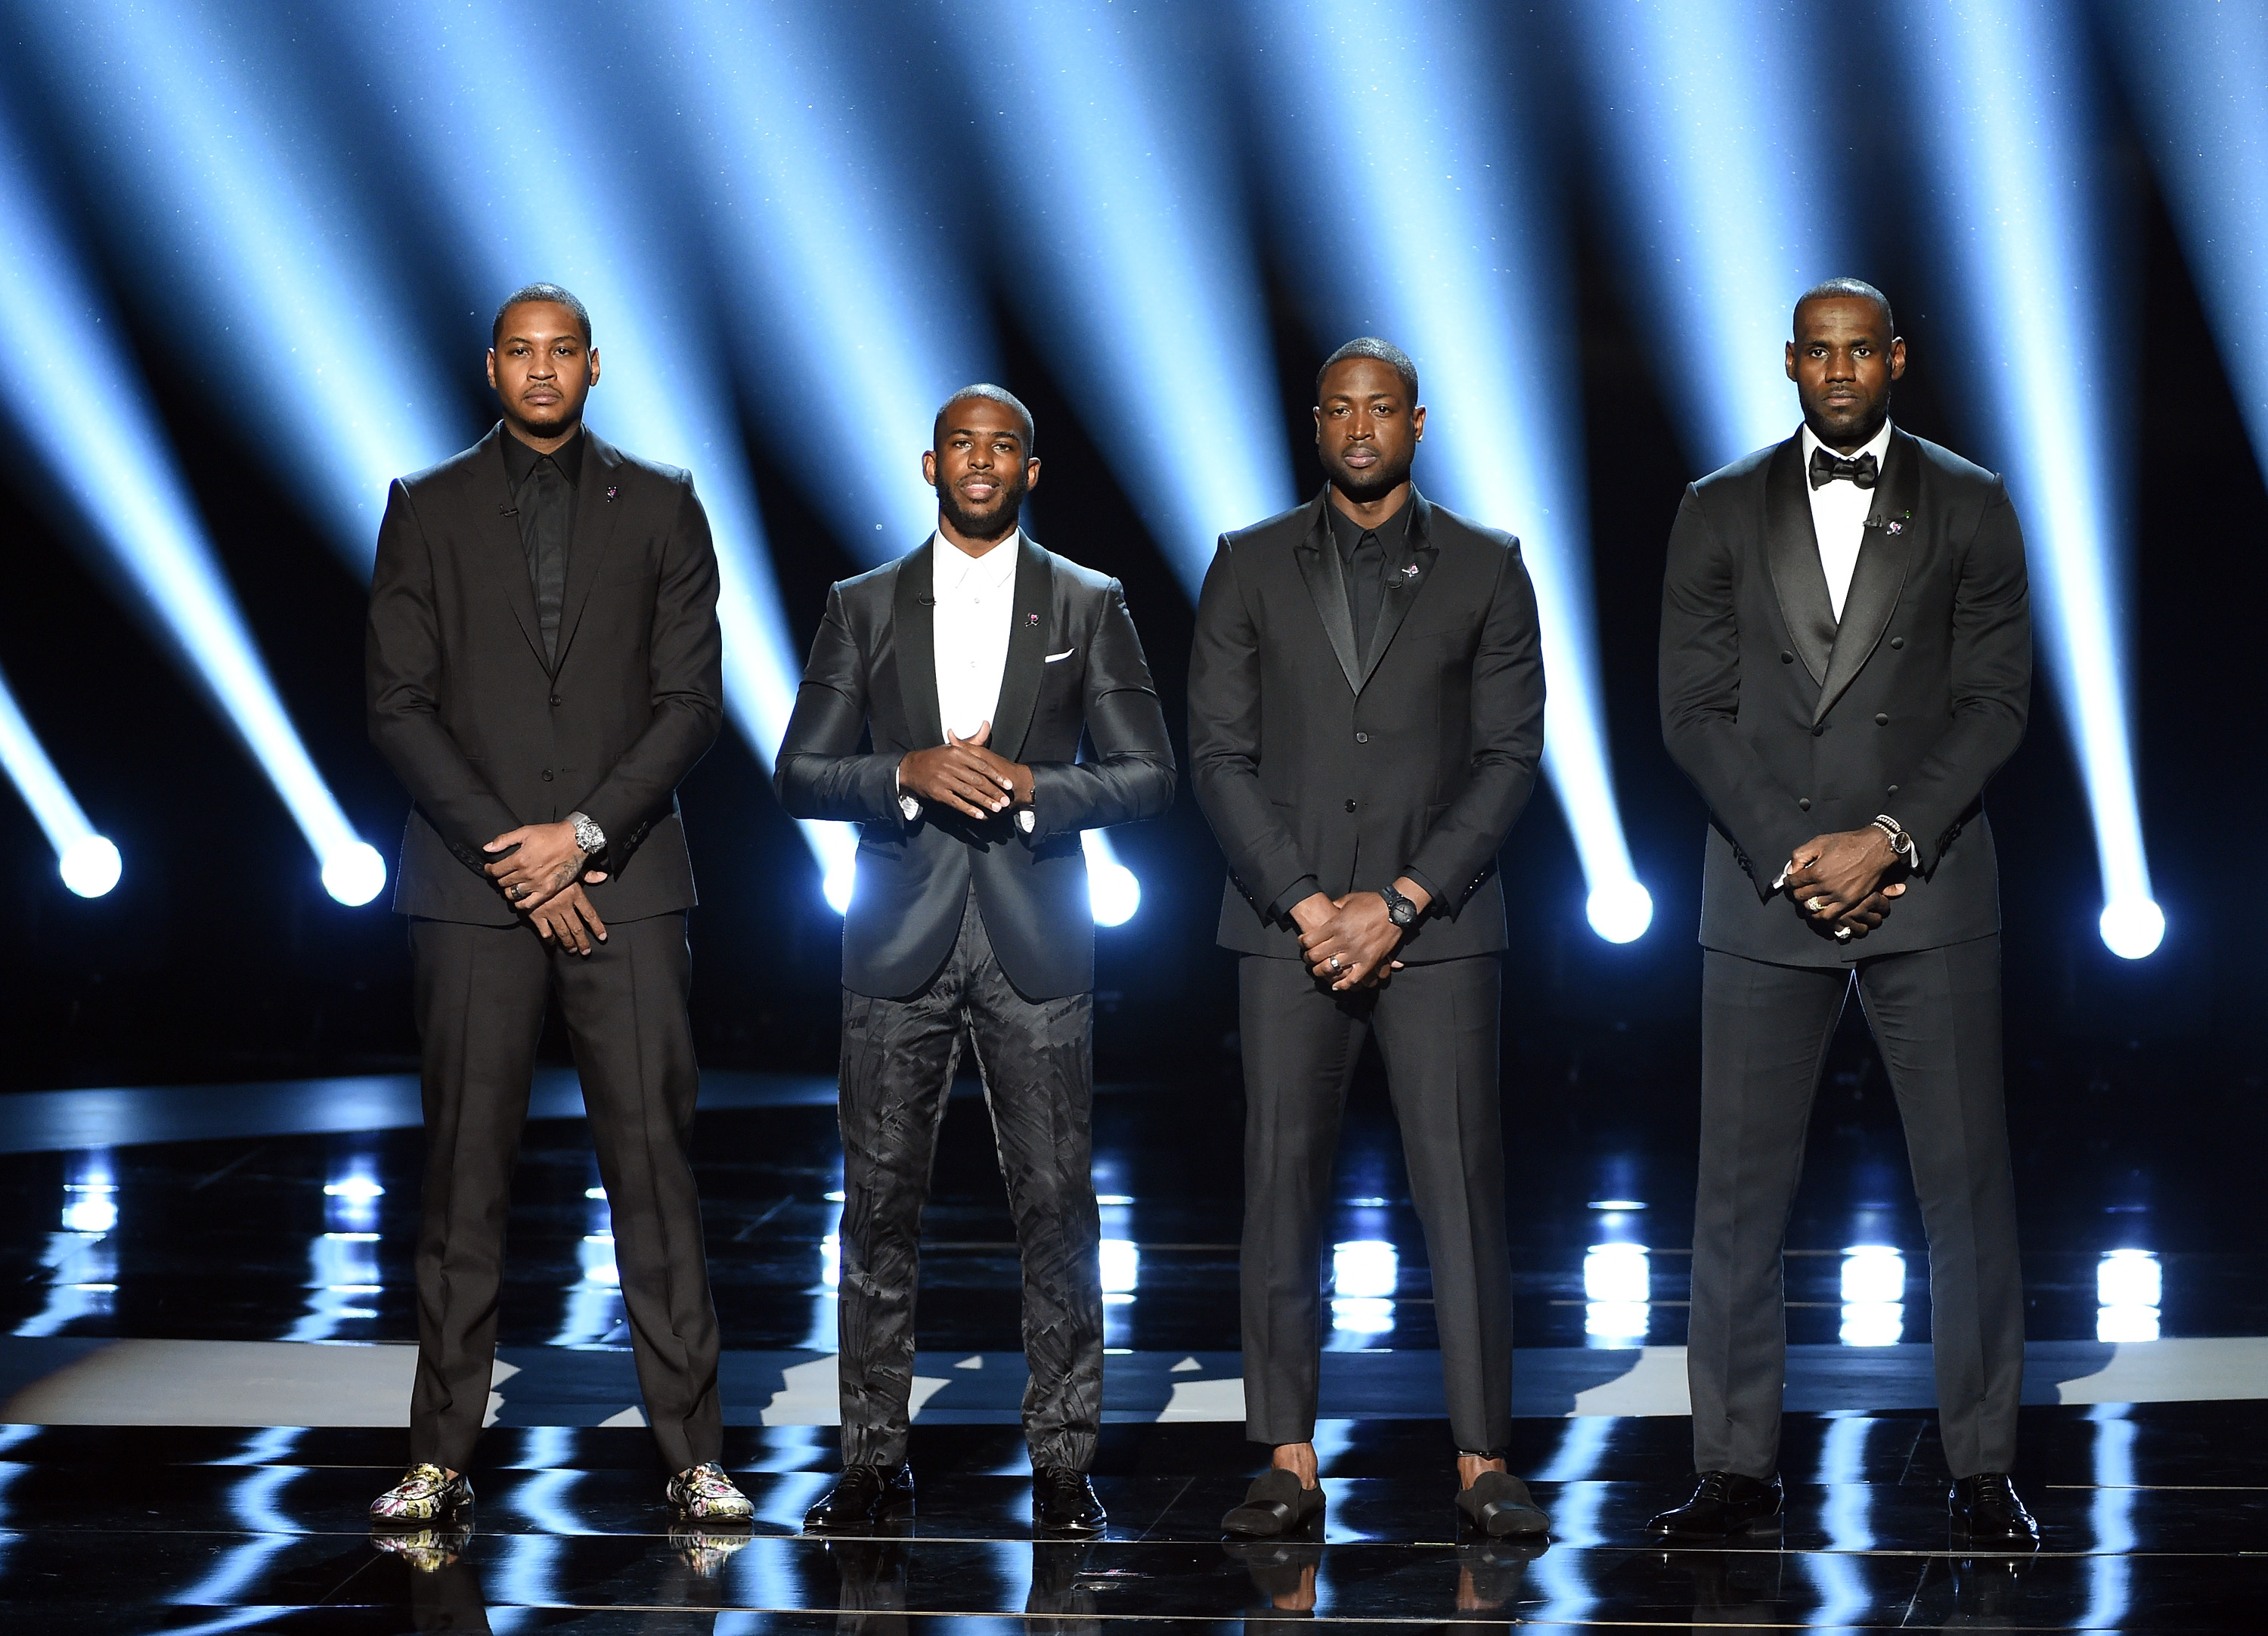 LOS ANGELES, CA - JULY 13: (L-R) NBA players Carmelo Anthony, Chris Paul, Dwyane Wade and LeBron James speak onstage during the 2016 ESPYS at Microsoft Theater on July 13, 2016 in Los Angeles, California. (Photo by Kevin Winter/Getty Images)